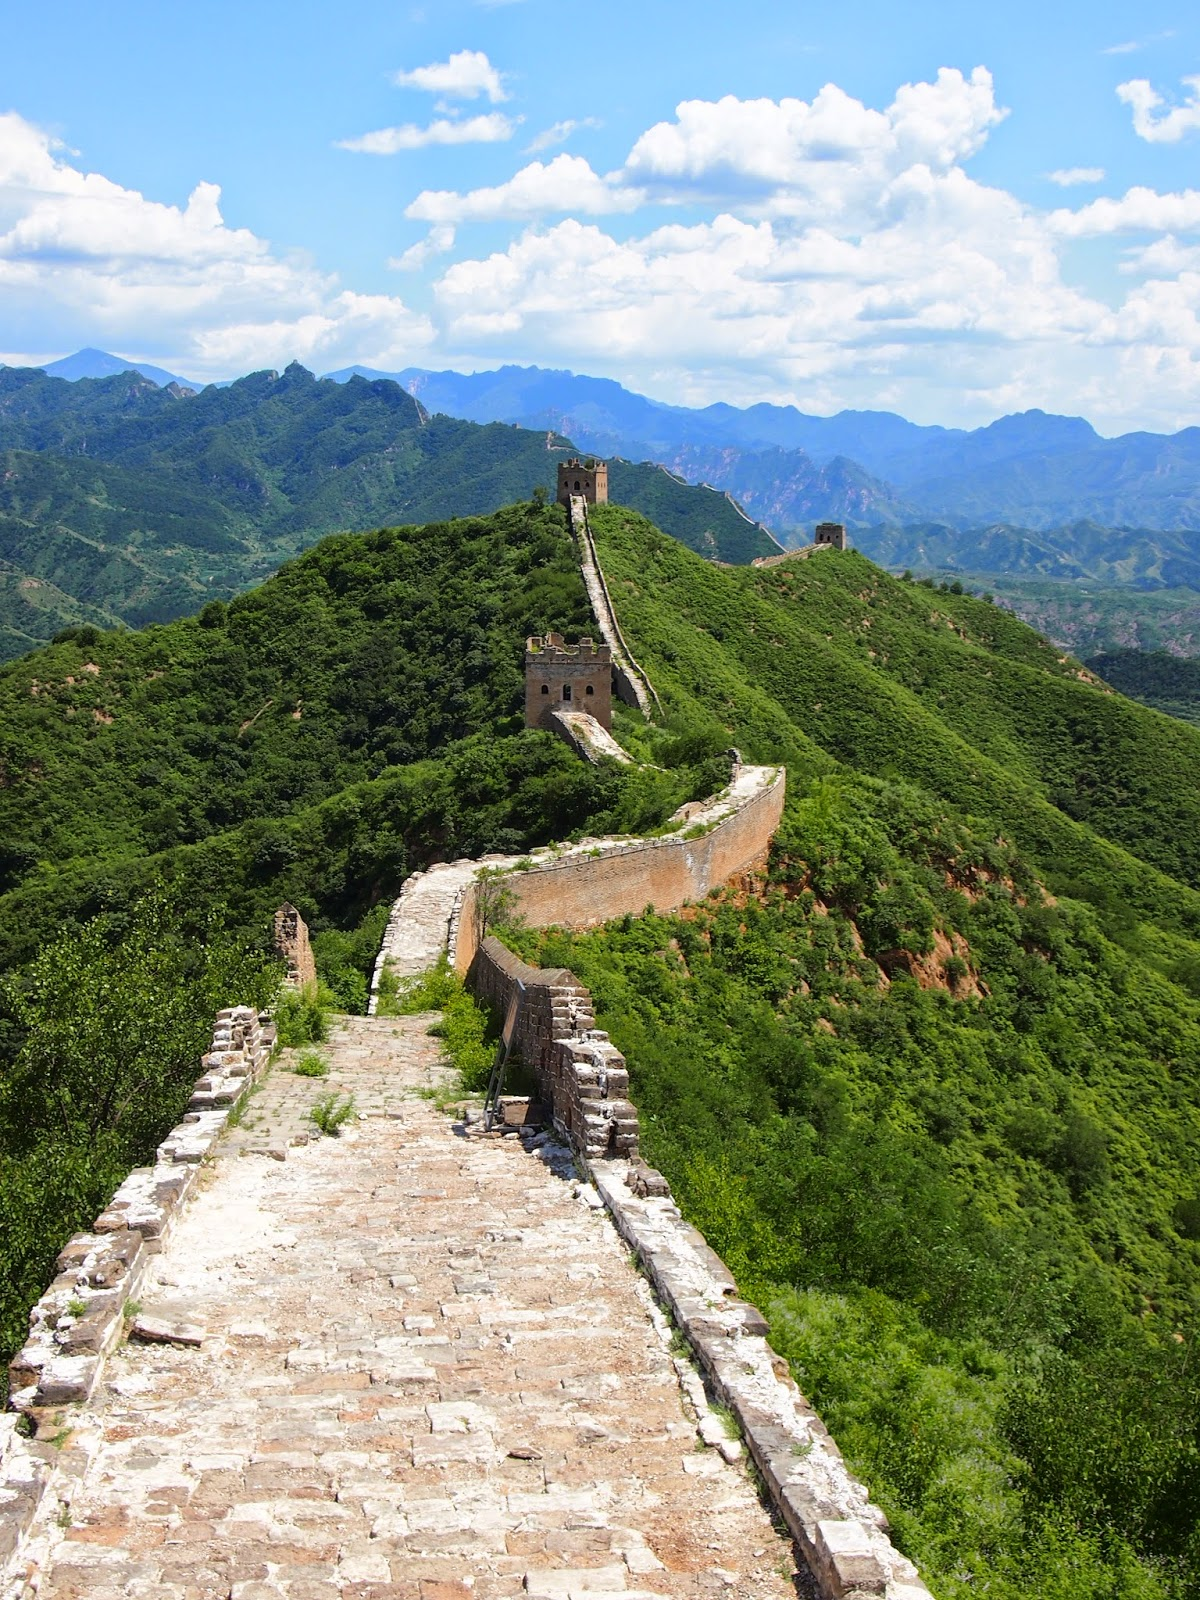 unrestored sections of the Jinshaling Great Wall of China